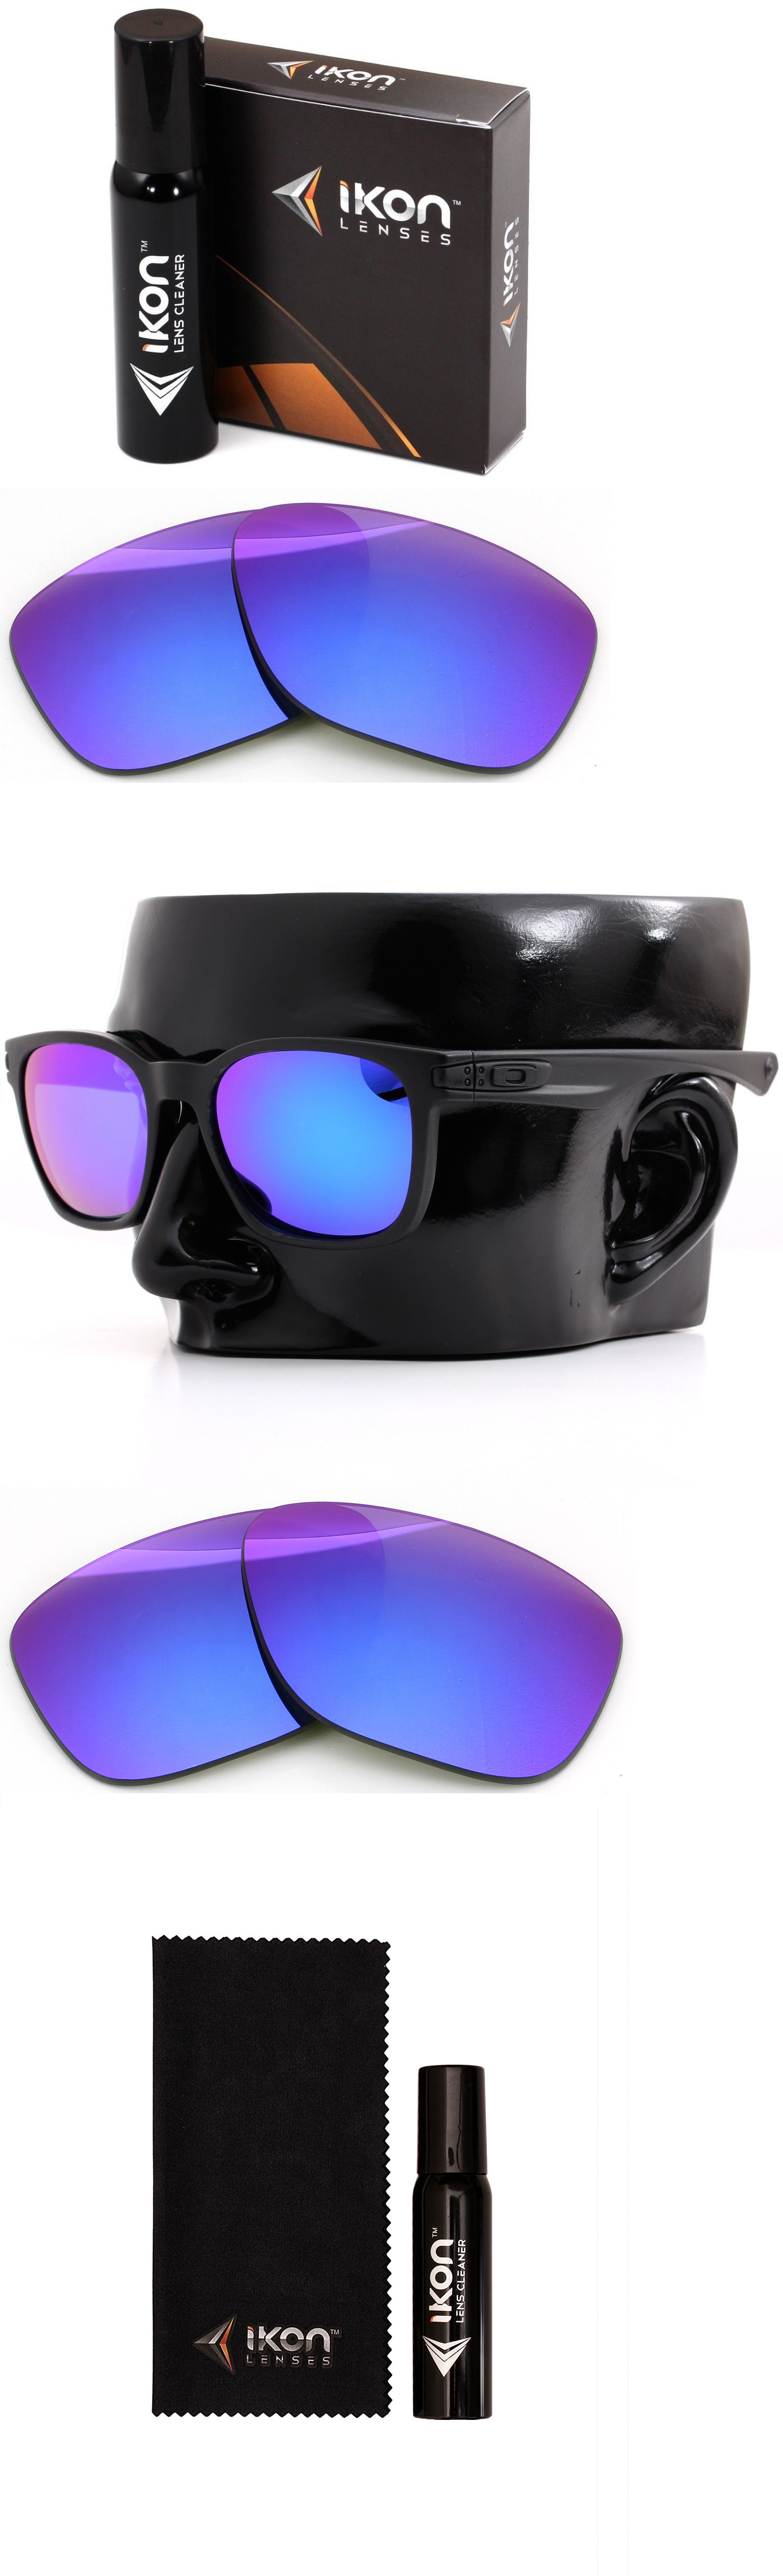 c20d69b3ac Sunglass Lens Replacements 179195  Polarized Ikon Iridium Replacement Lenses  For Oakley Garage Rock Purple Mirror -  BUY IT NOW ONLY   37.99 on eBay!